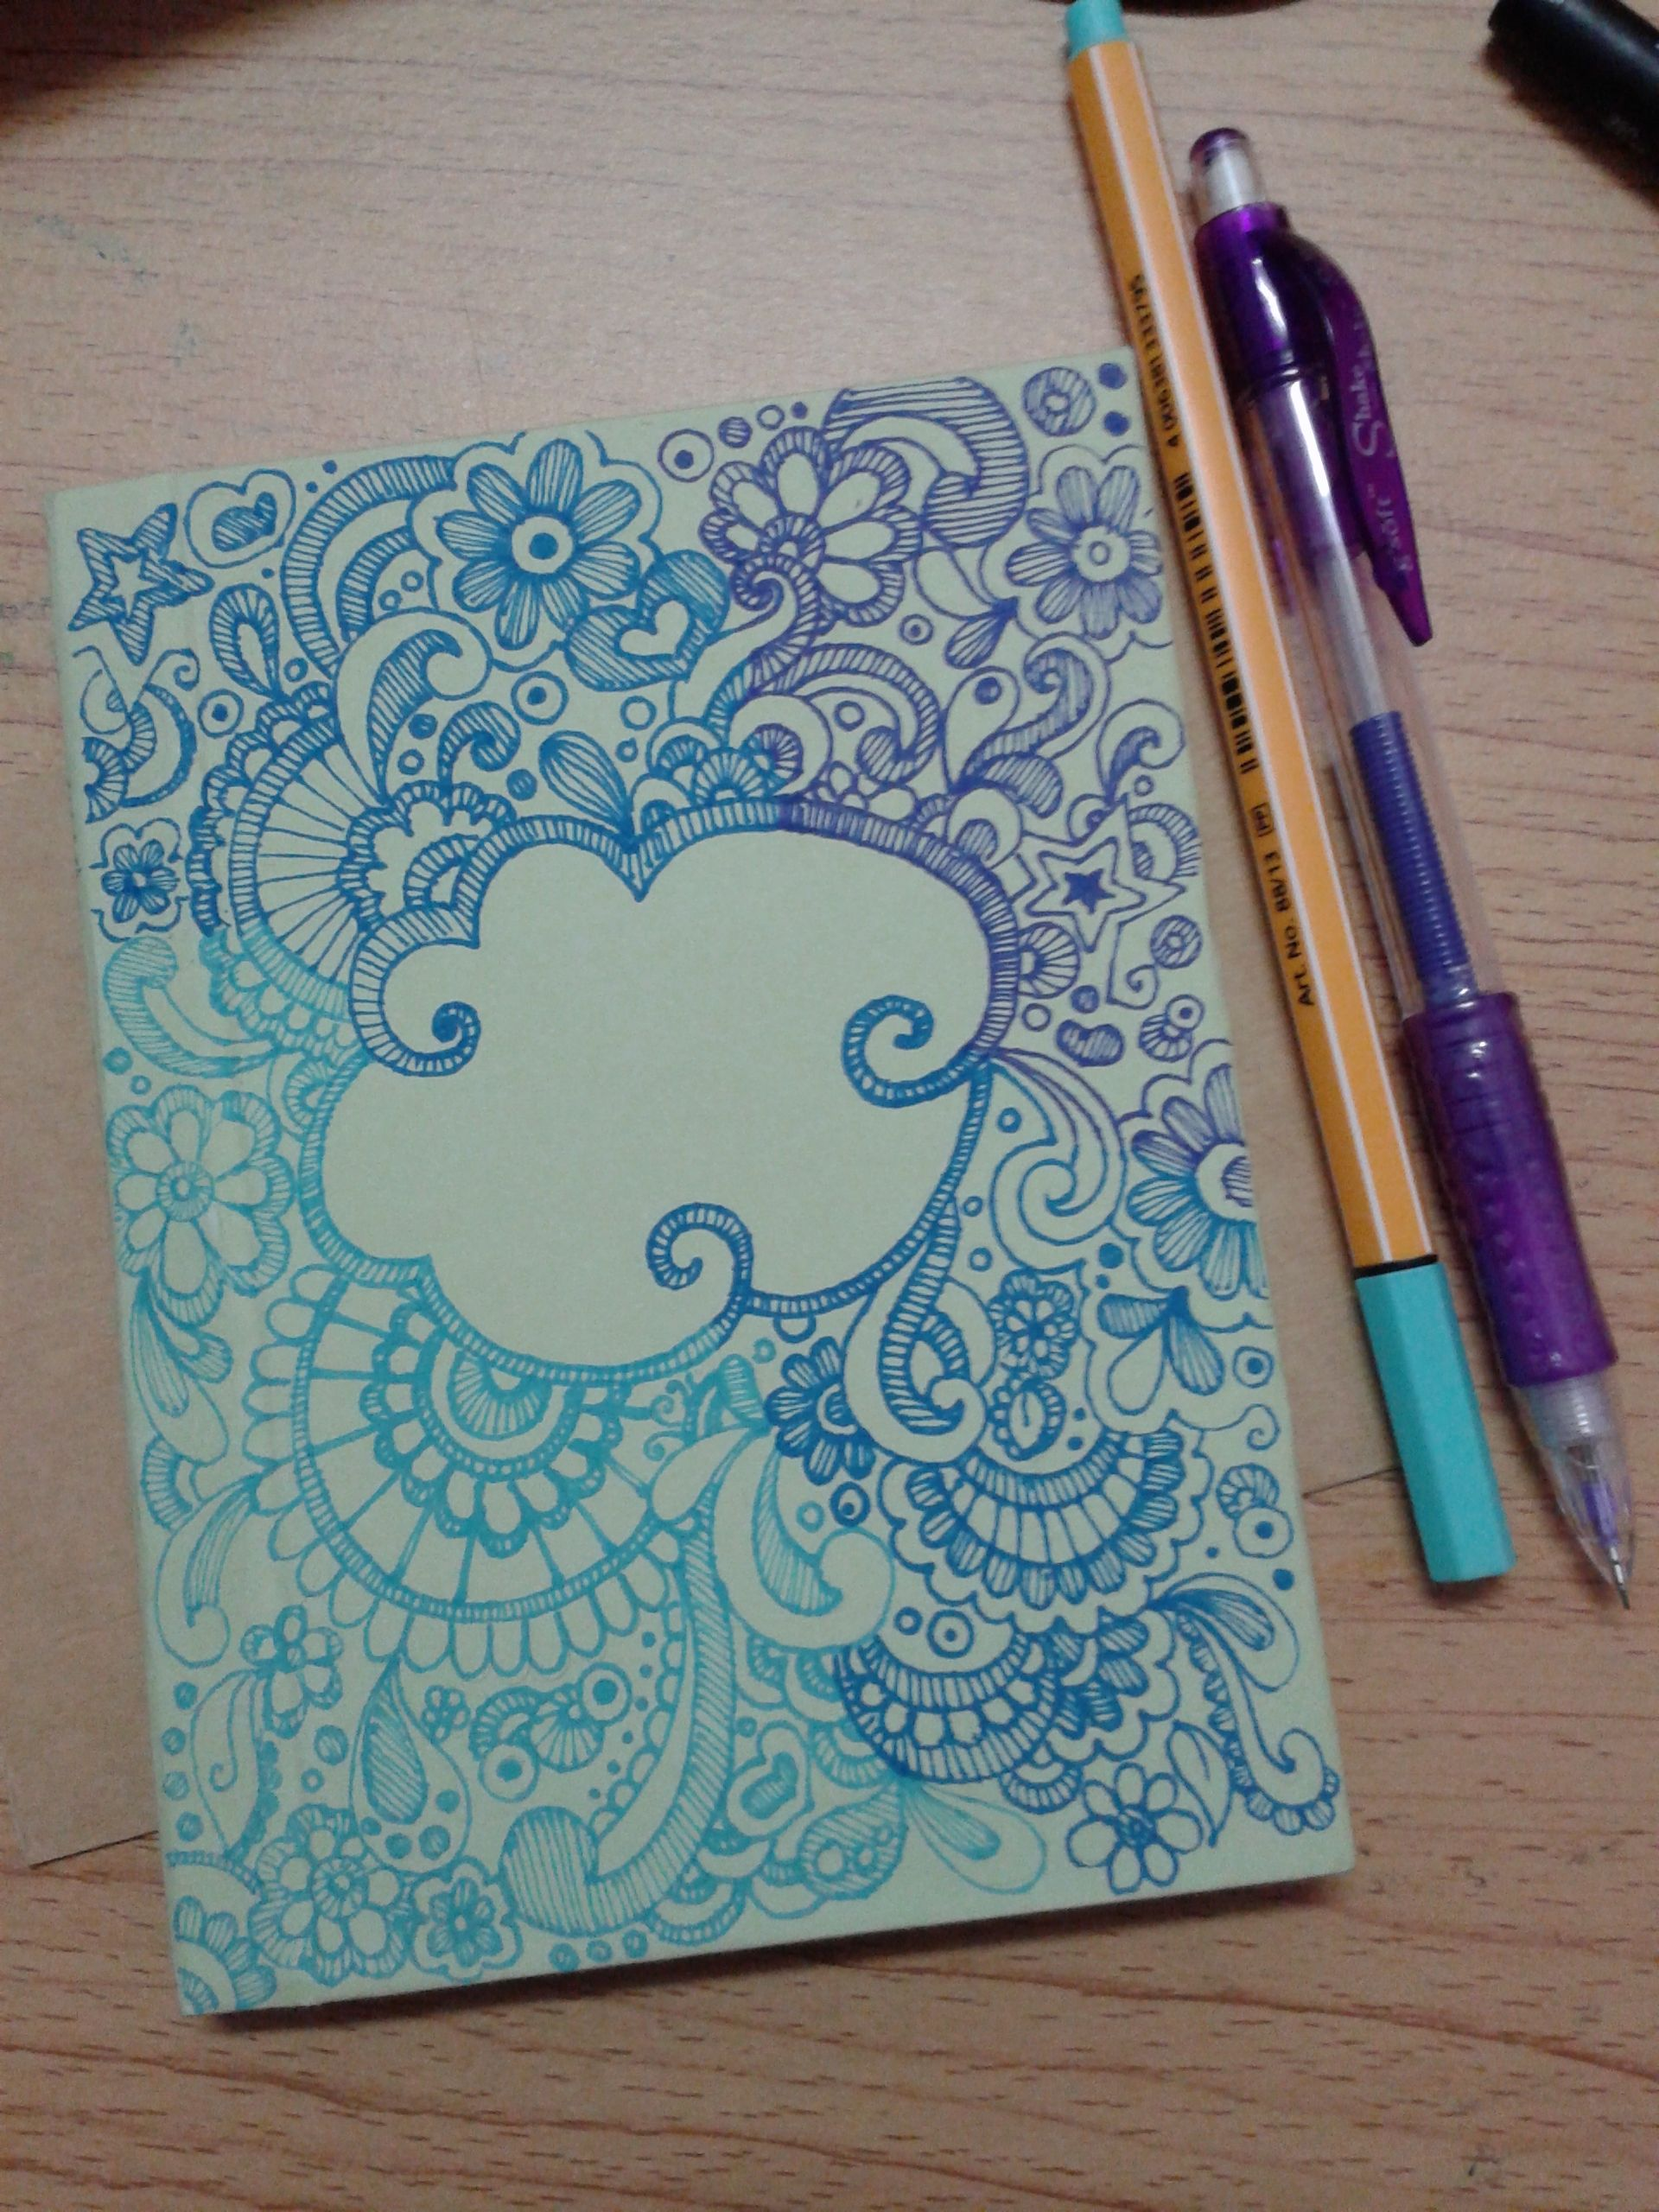 Doodle for diy notebook cover diy notebook cover